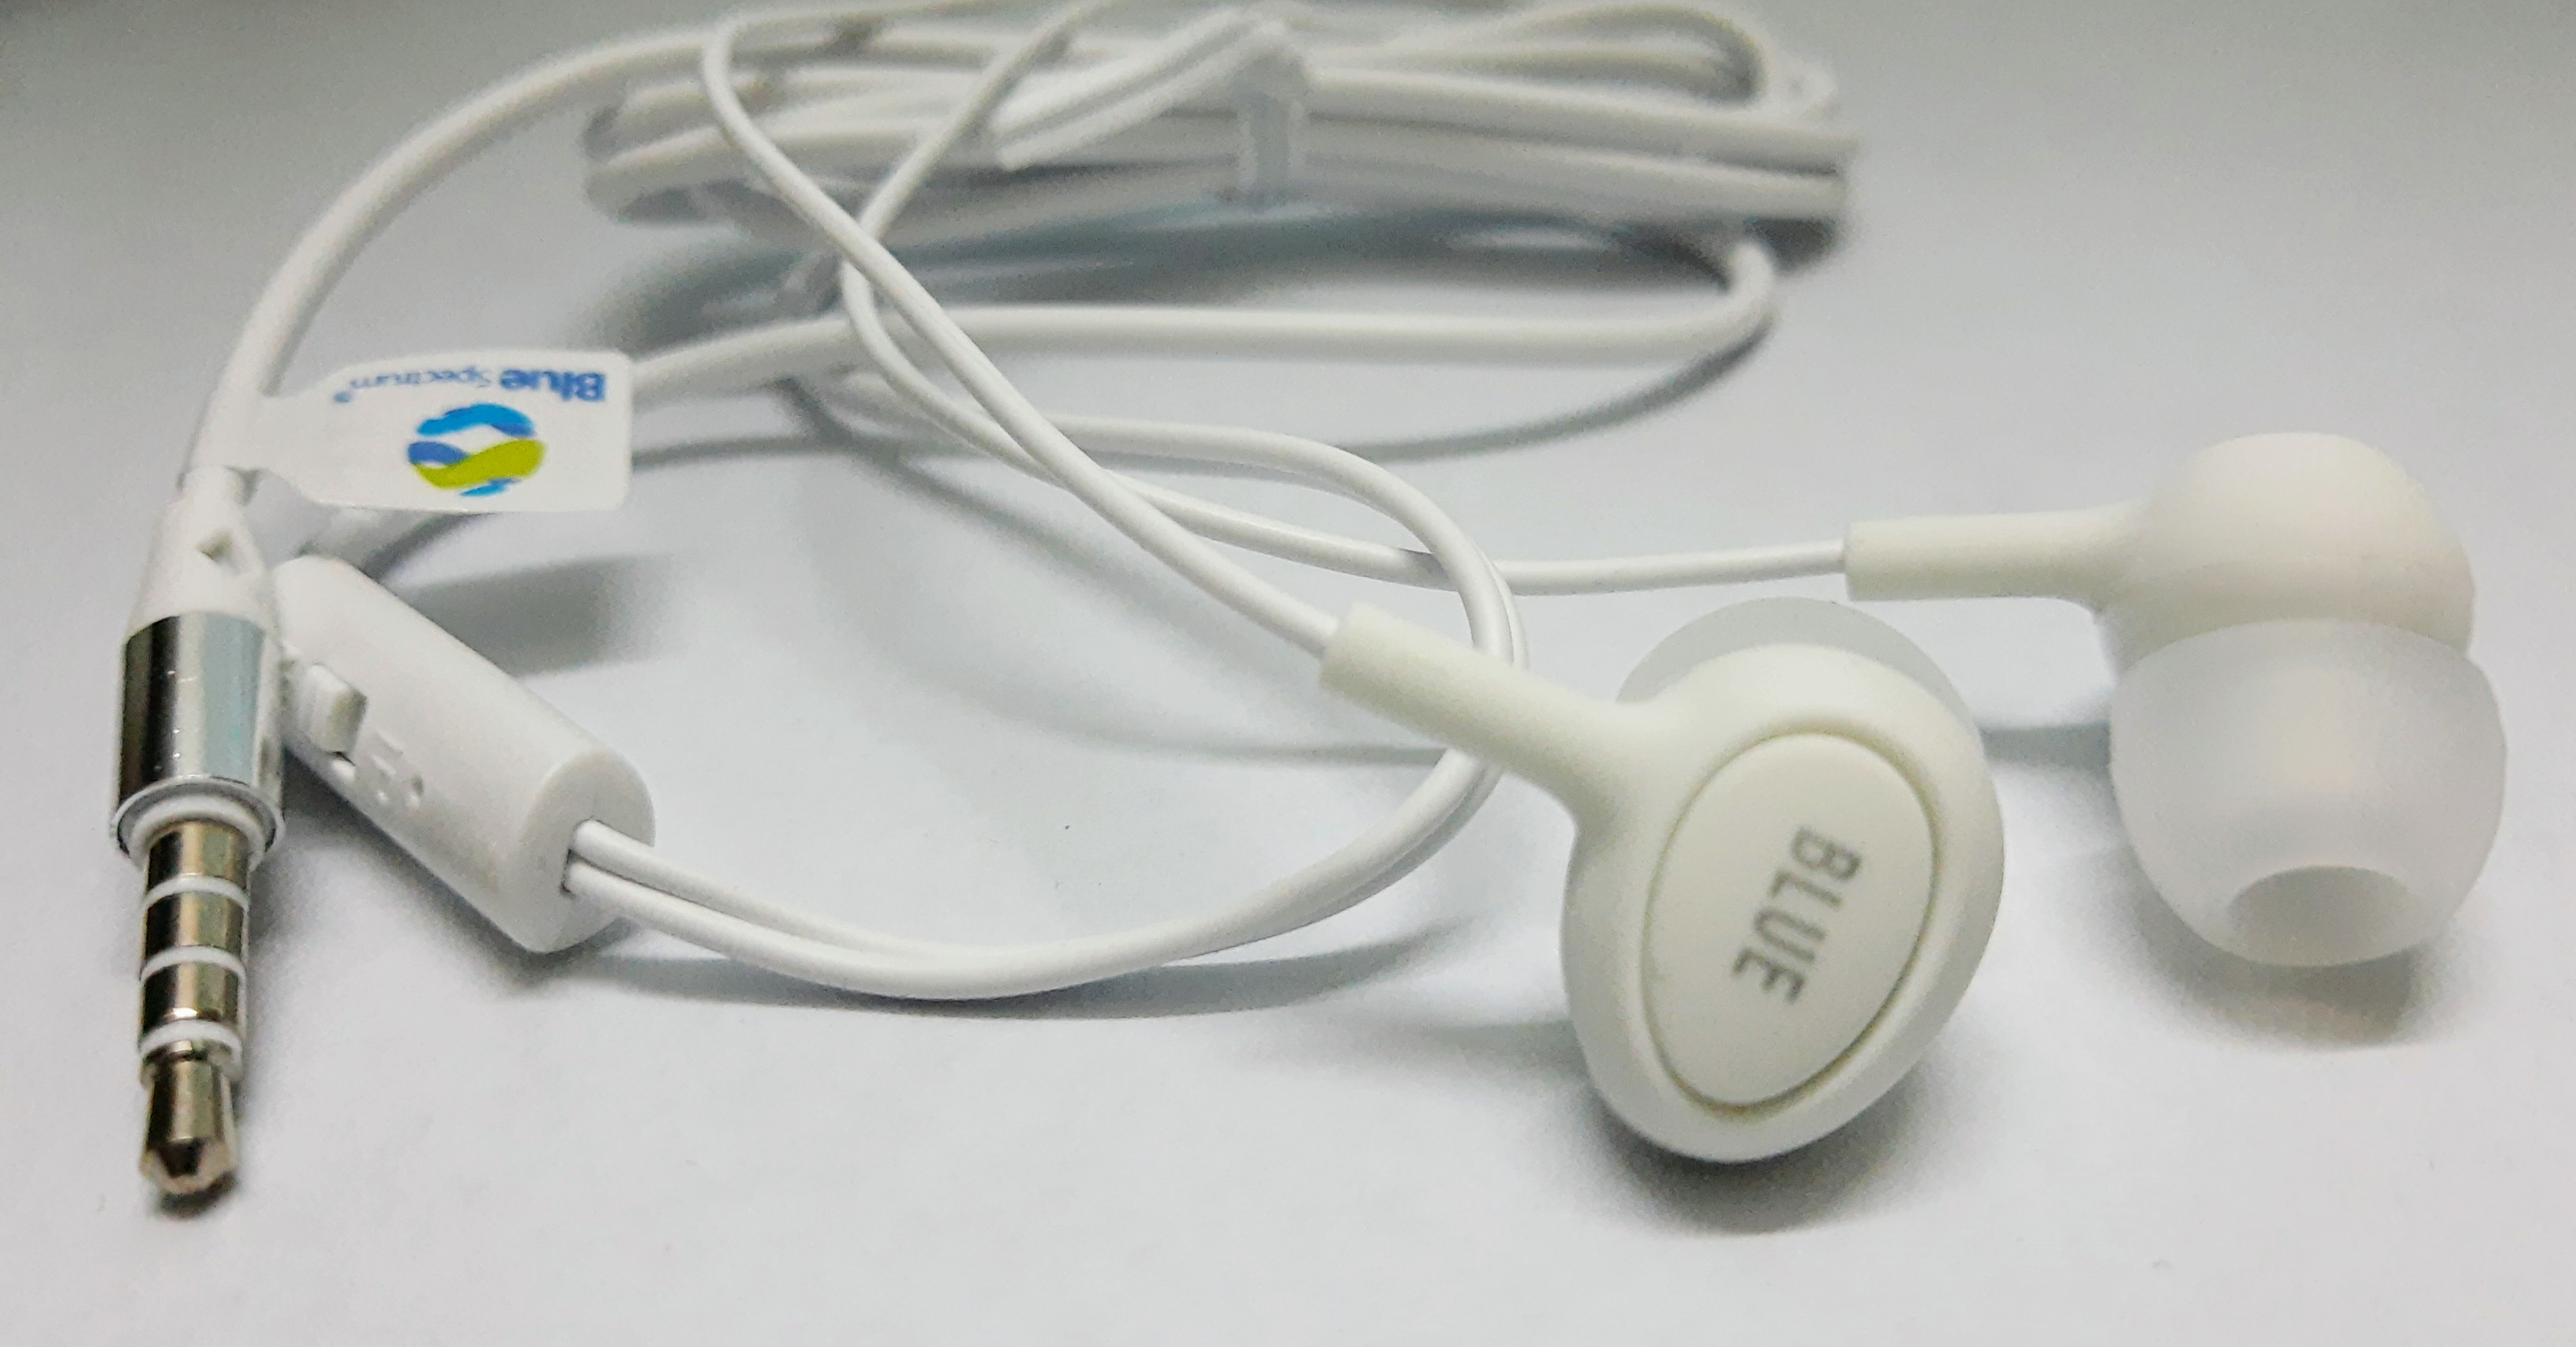 Blue Spectrum M5 High Bass with Moving Coil Technology Handsfree and music earphones 3.5mm jack